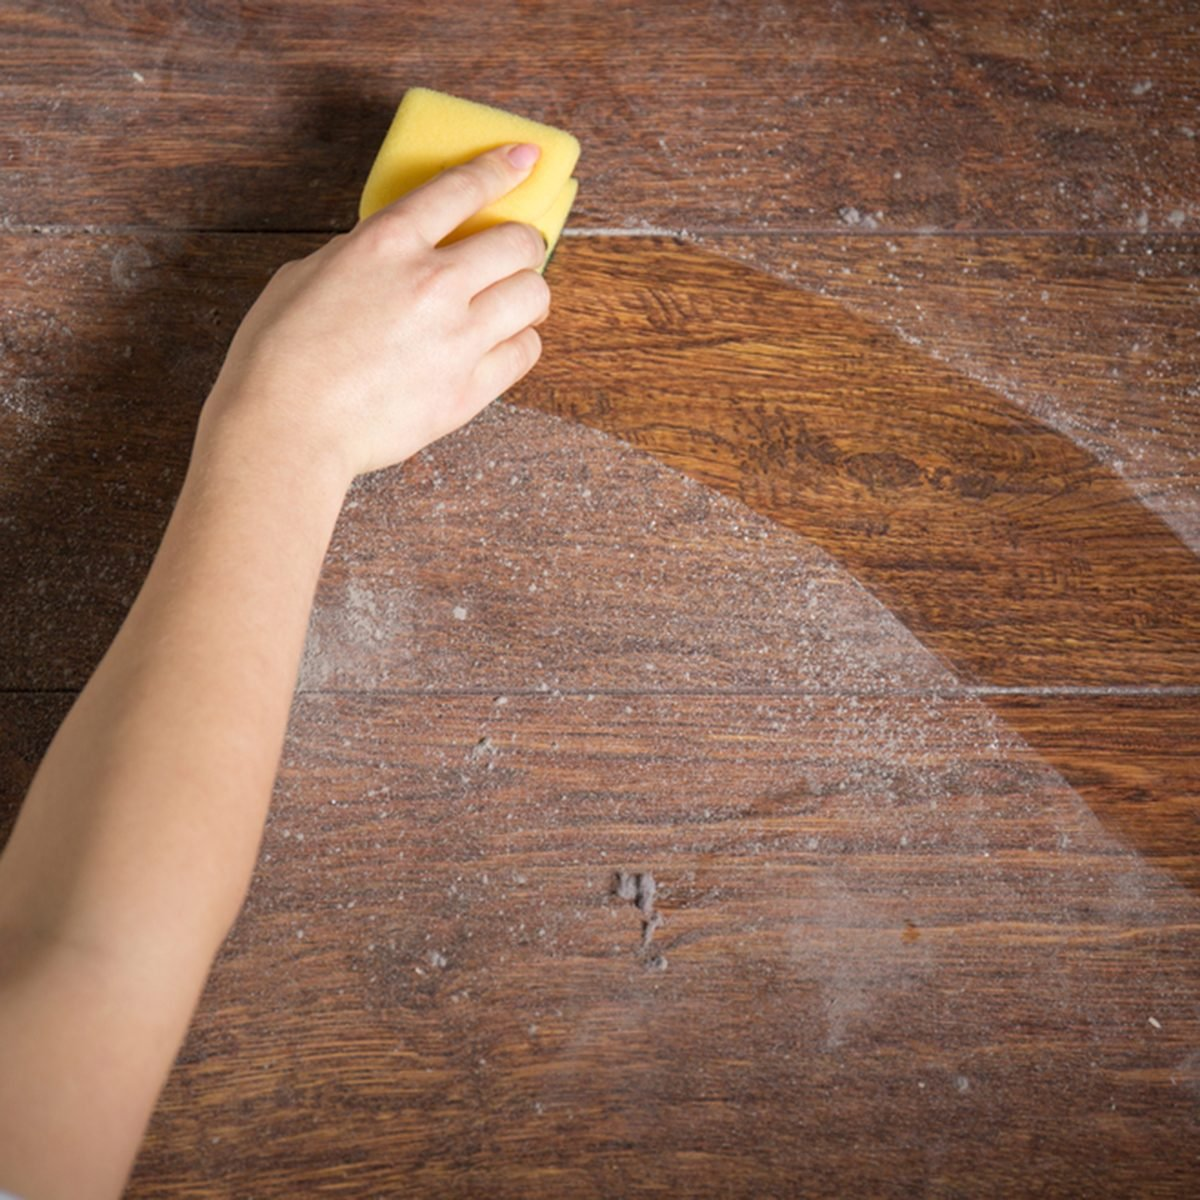 Using yellow sponge for cleaning dusty wood; Shutterstock ID 273329774